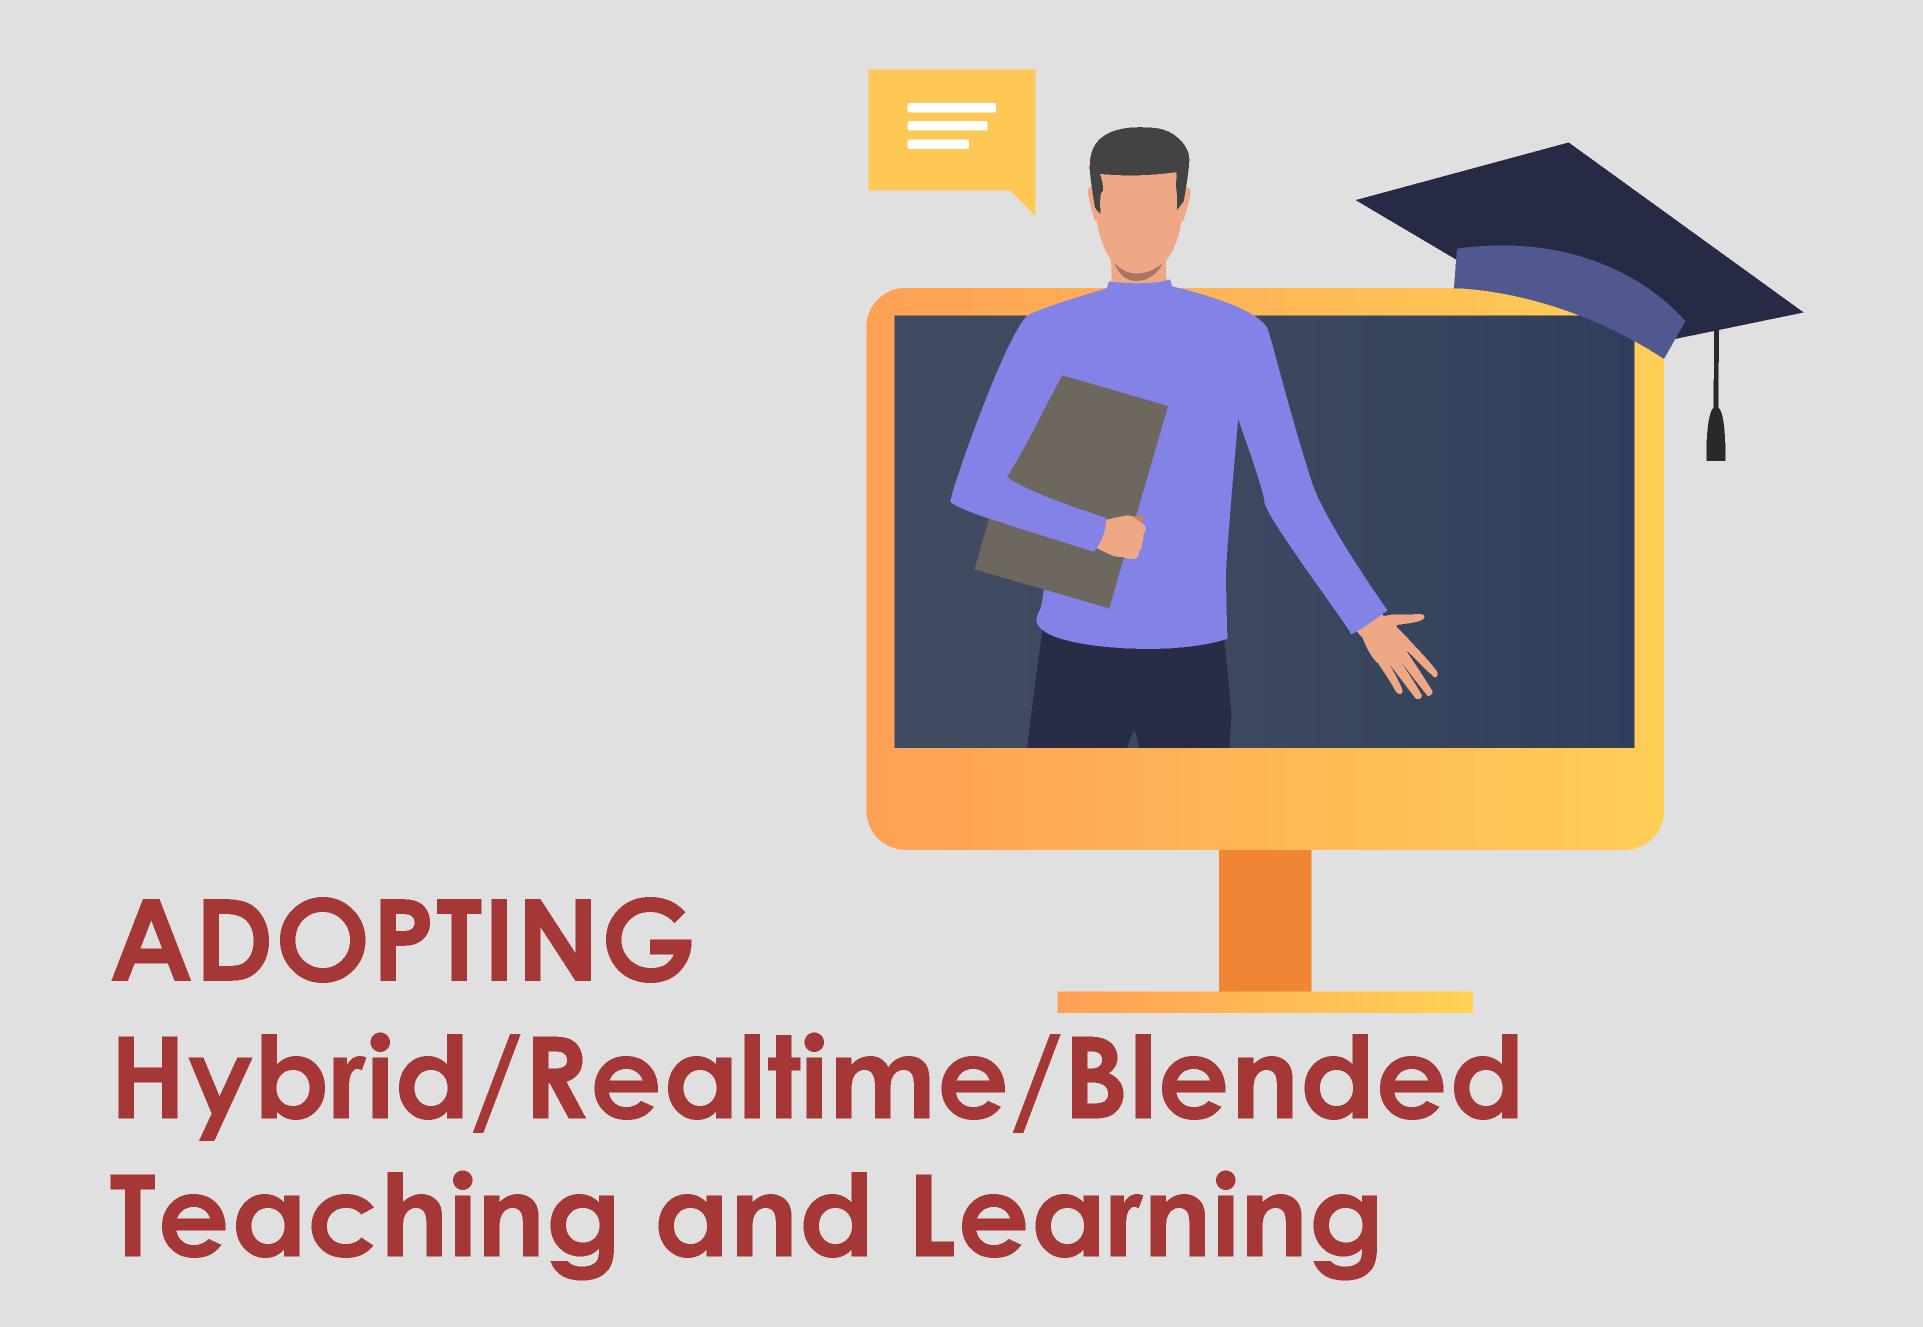 Adopting real time online learning and teaching